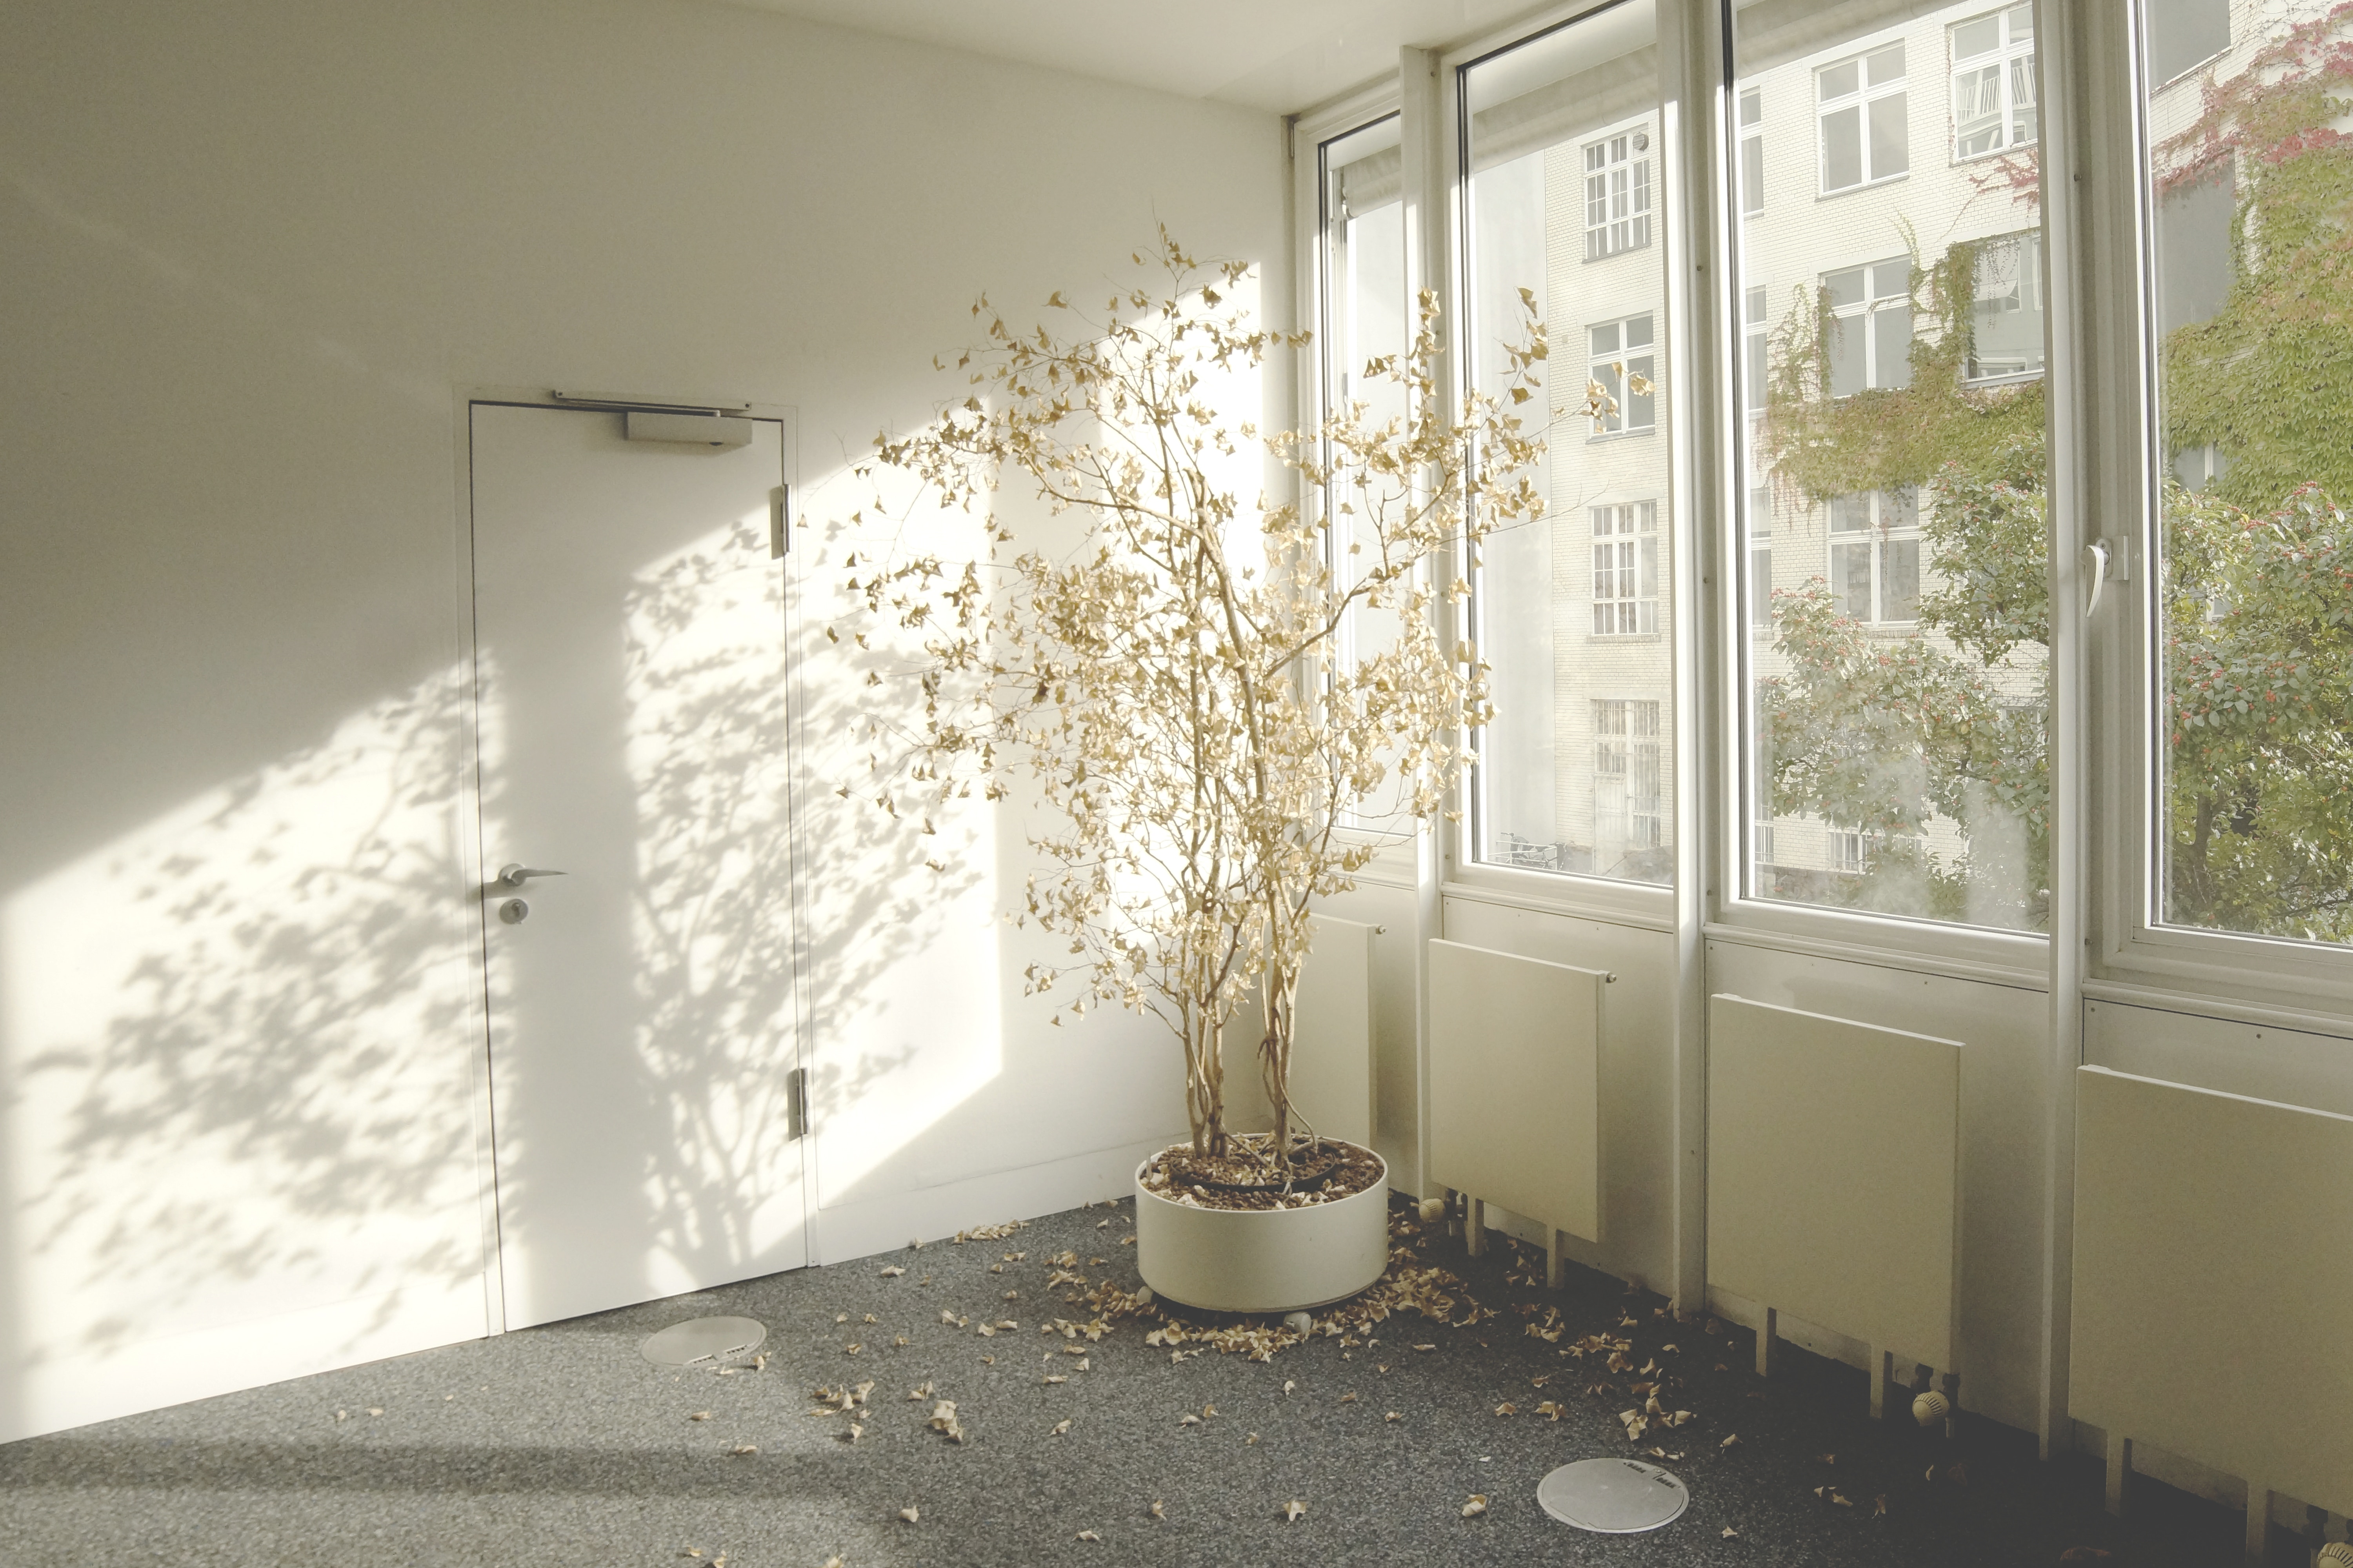 a plant left to wither in a business as usual office